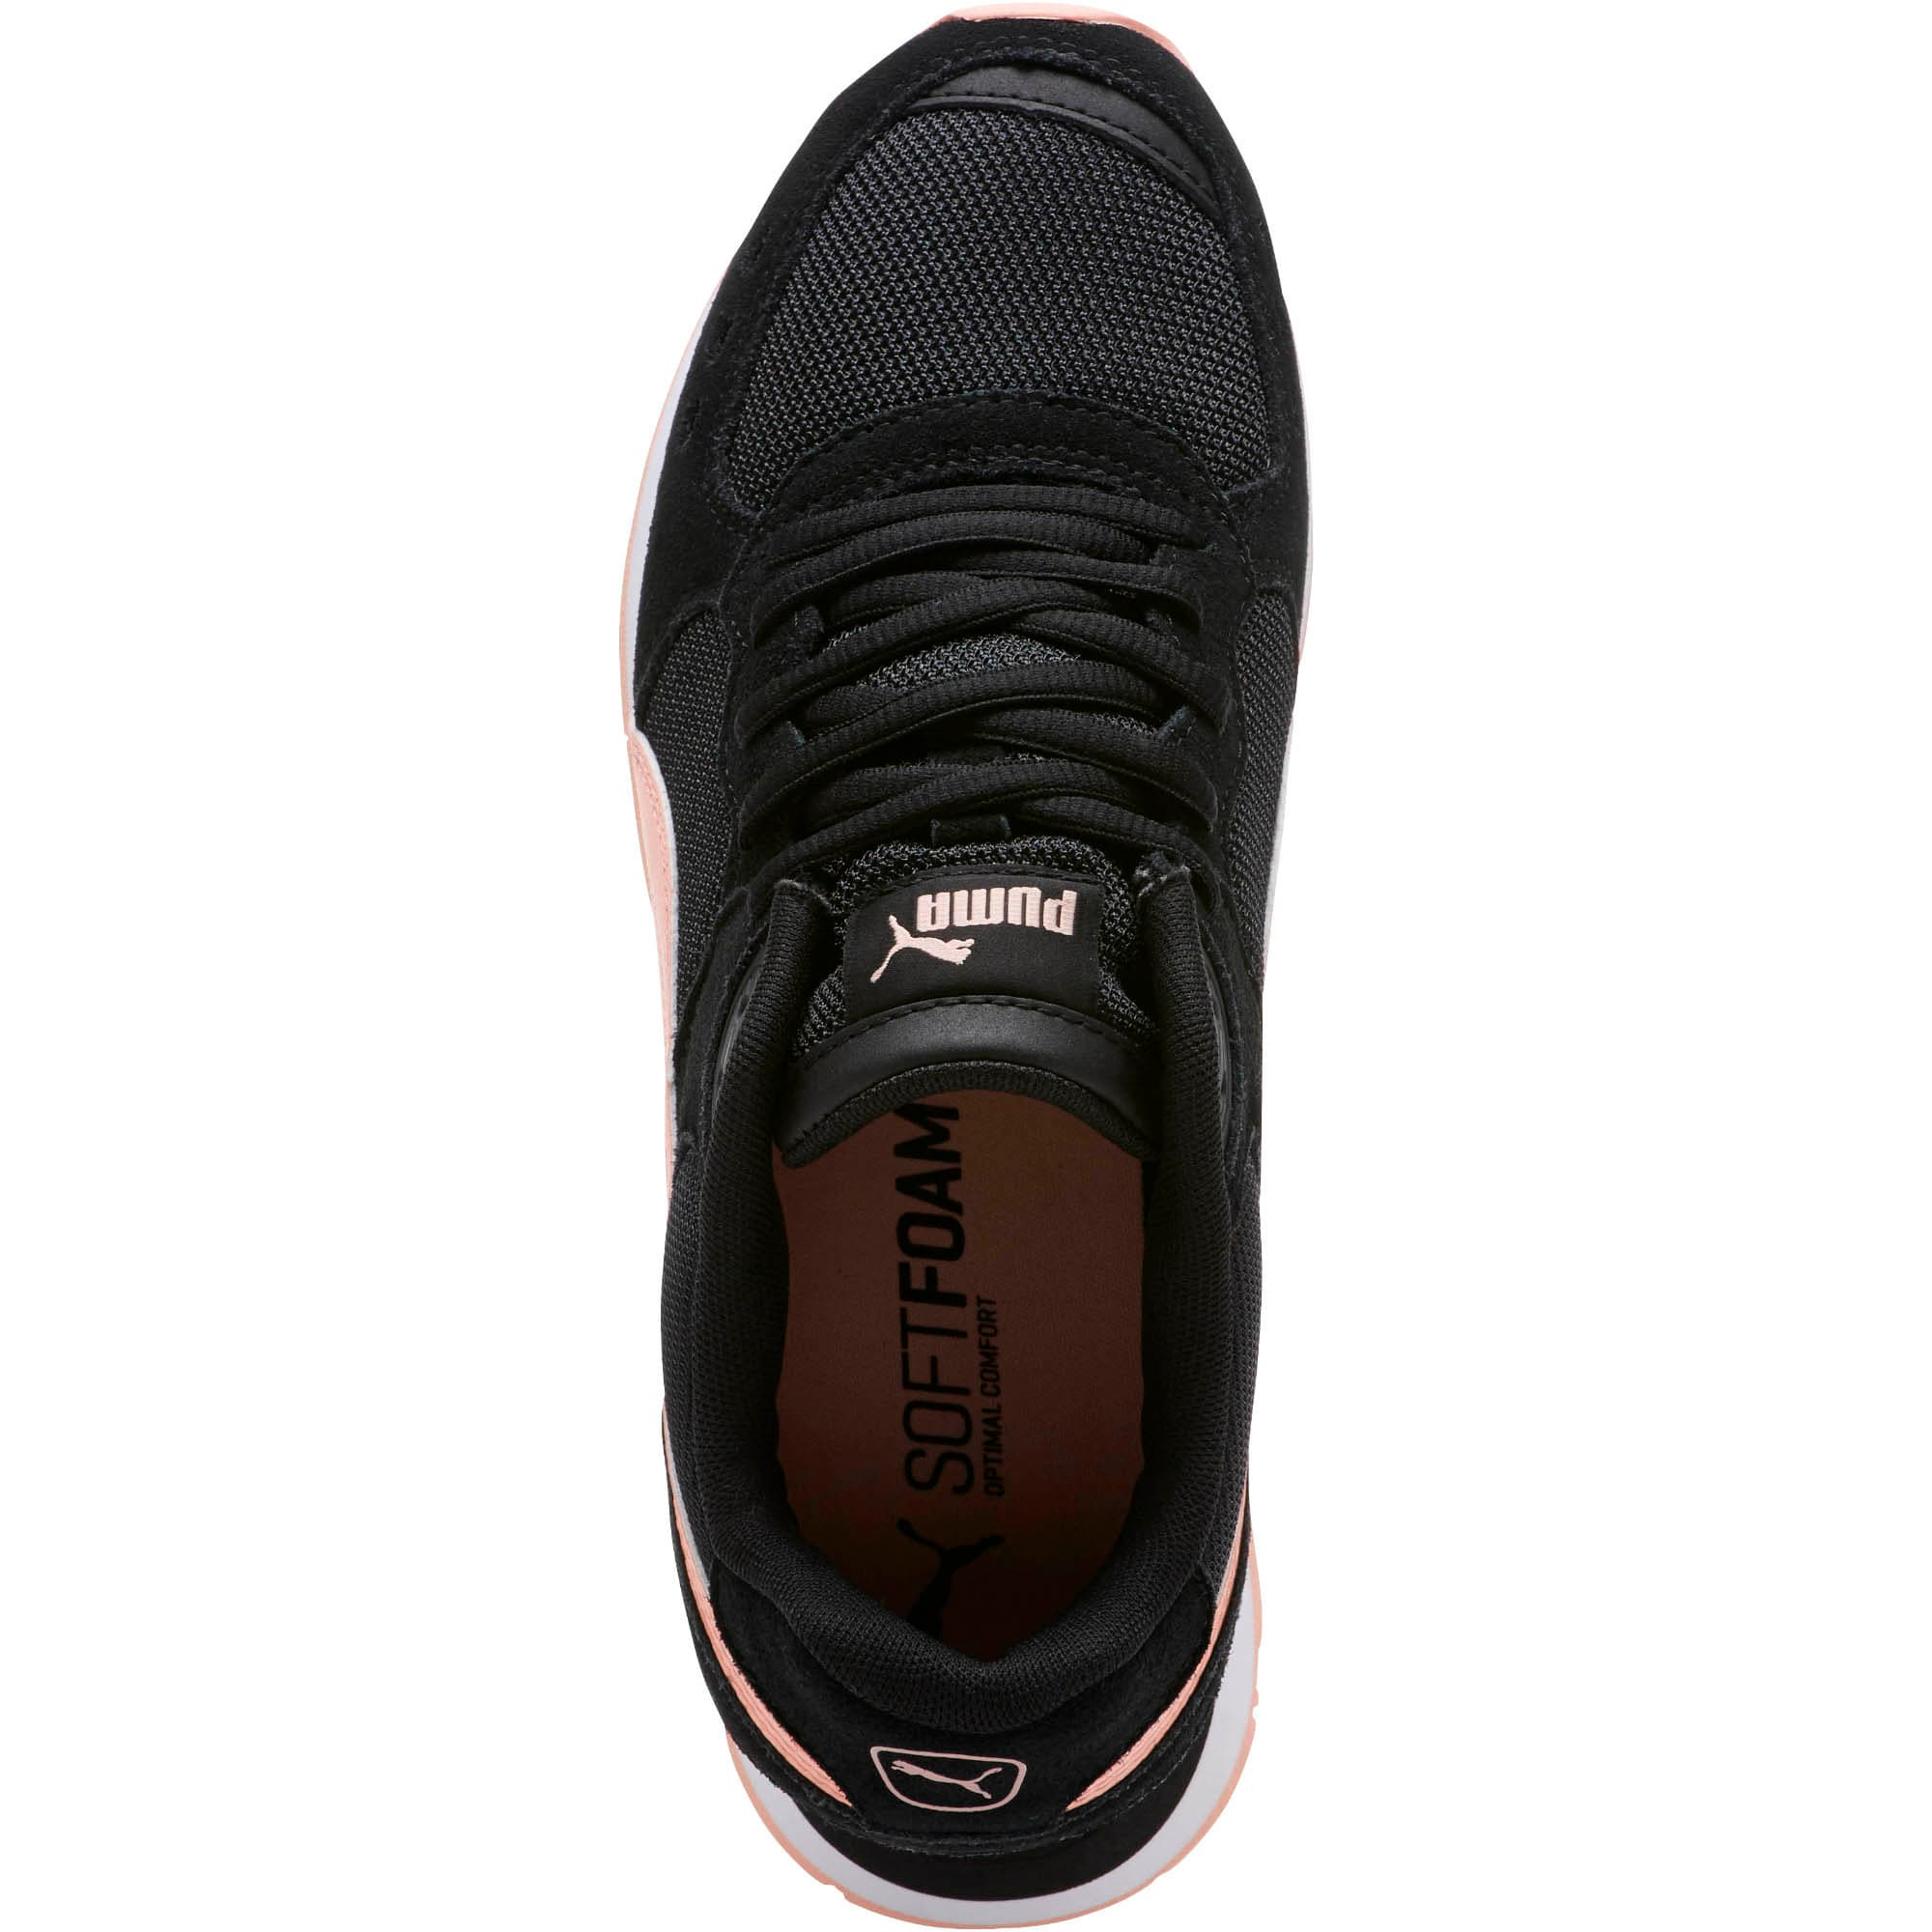 Thumbnail 5 of Vista Women's Sneakers, Puma Black-Peach Bud, medium